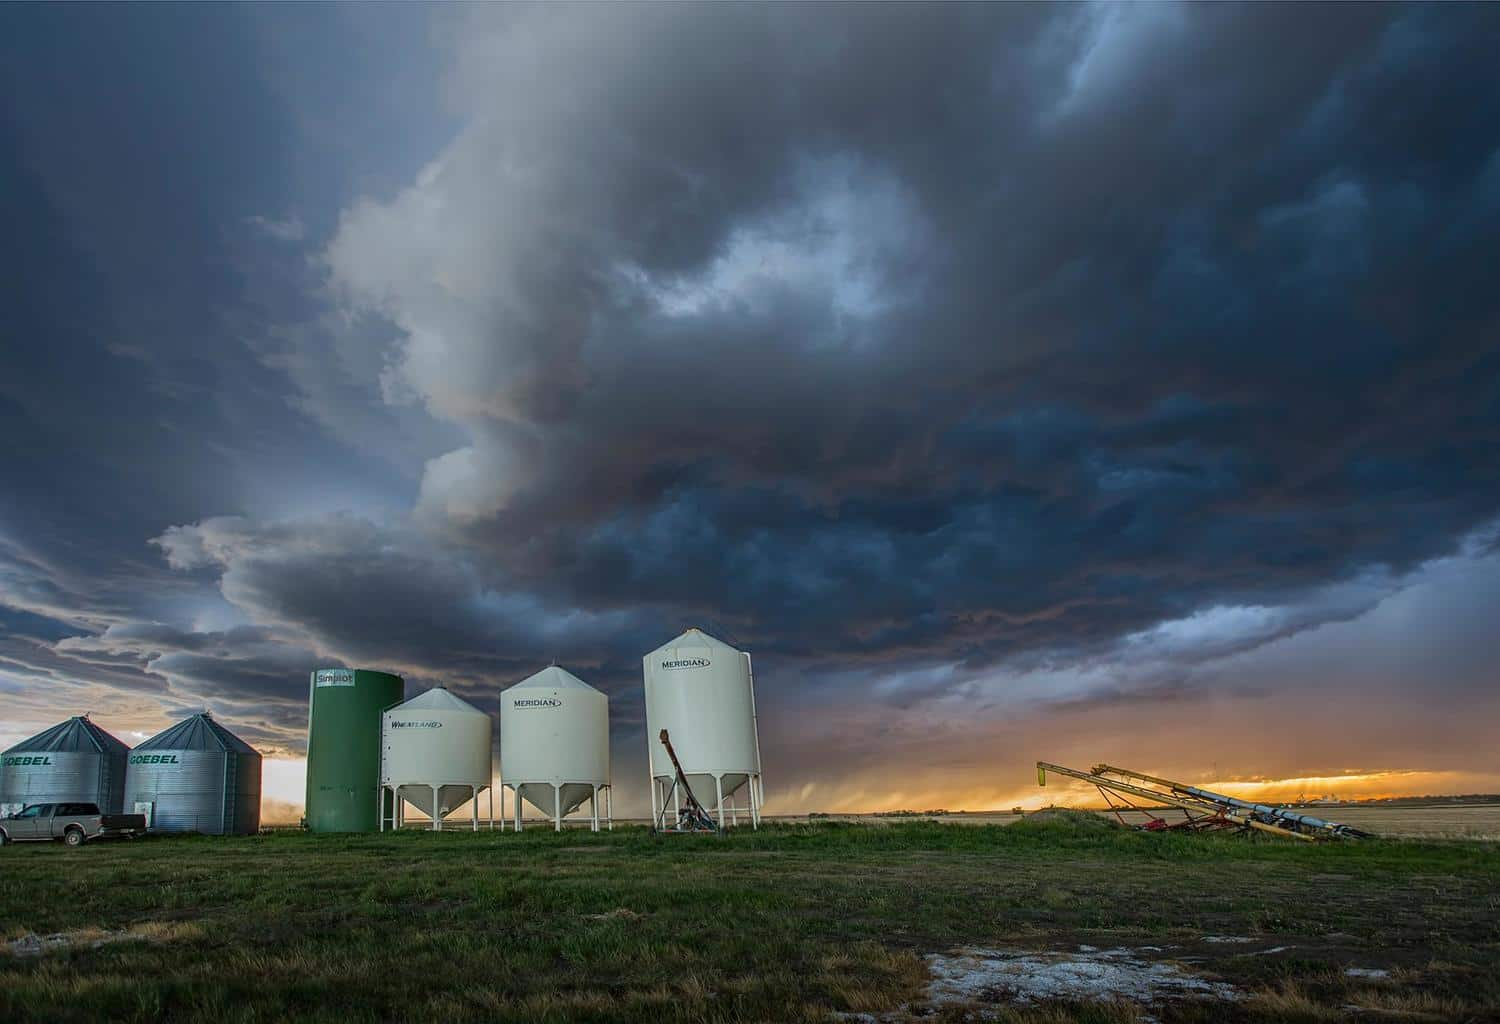 I got home to Leader Saskatchewan from a 20 day trip to tornado alley, 14,300 kms driven (8900 miles). Chased storms twice today, this was round 2 right at sunset, right by Leader.